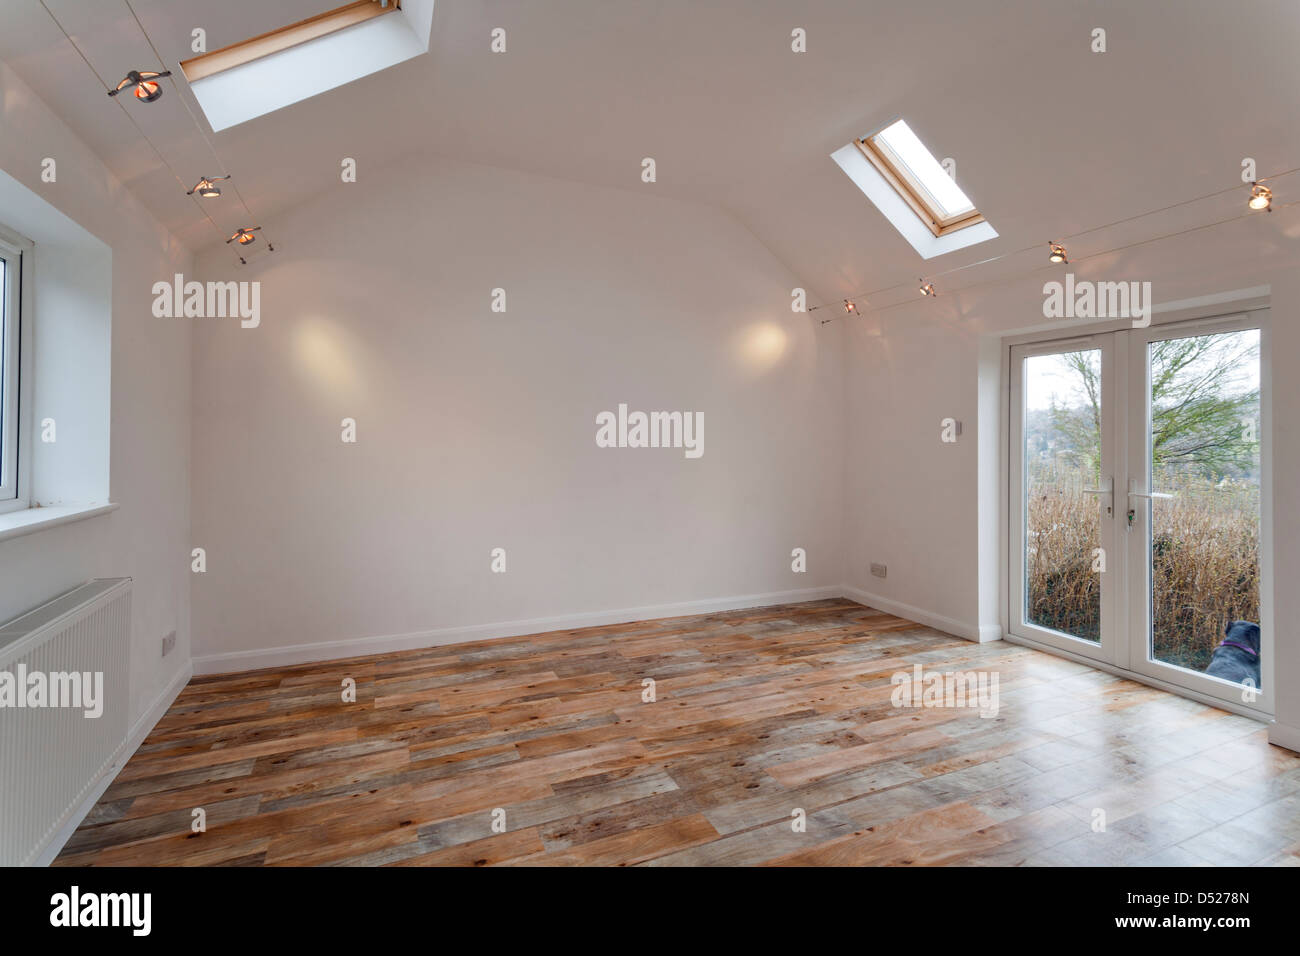 A large new unoccupied white painted high ceilinged empty room with Velux skylights. - Stock Image